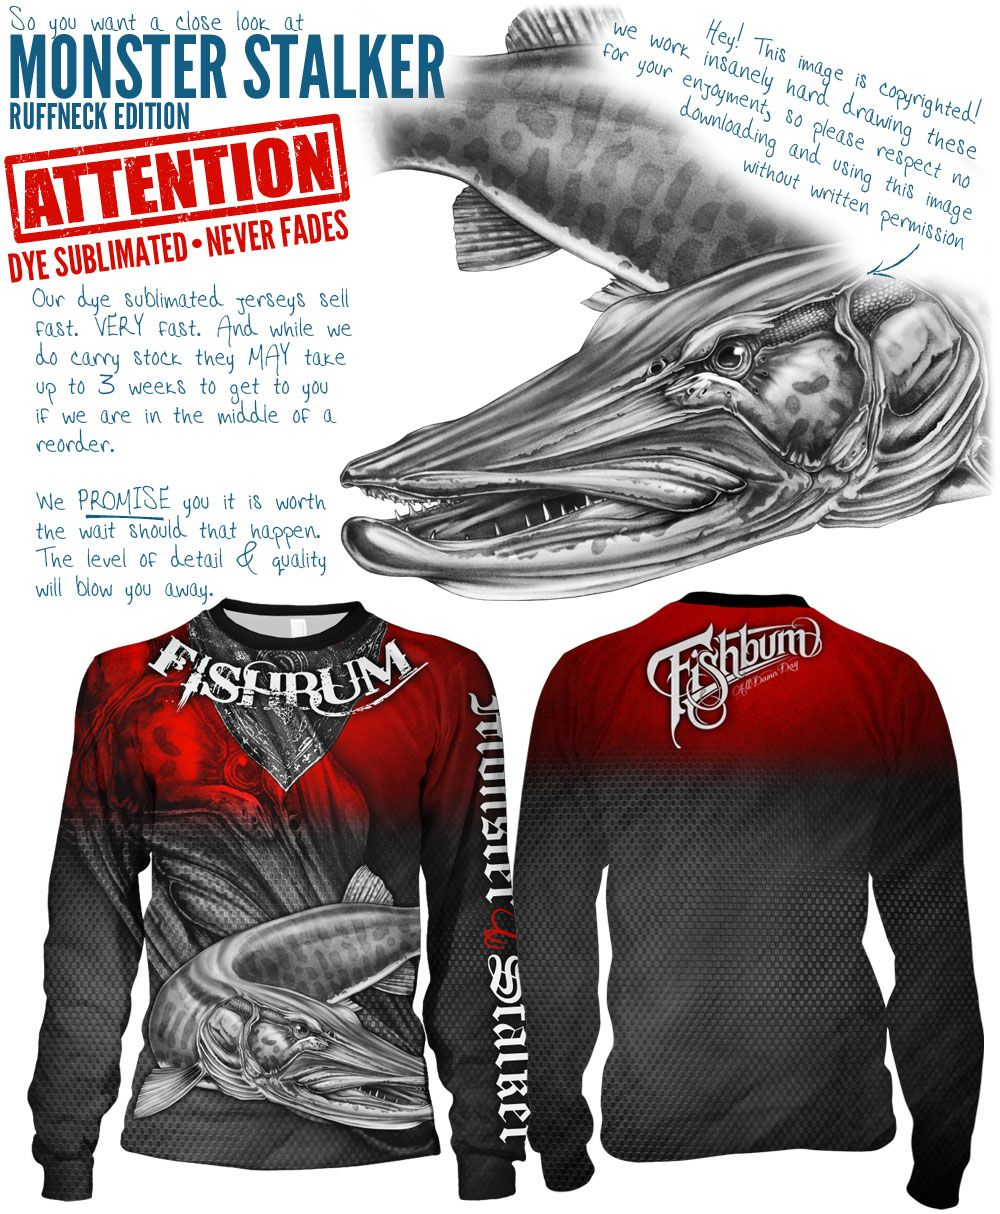 eed093f7 FISHBUM Fishing Clothing Presents – Monster Stalker Ruffneck Edition  Fishing Jersey